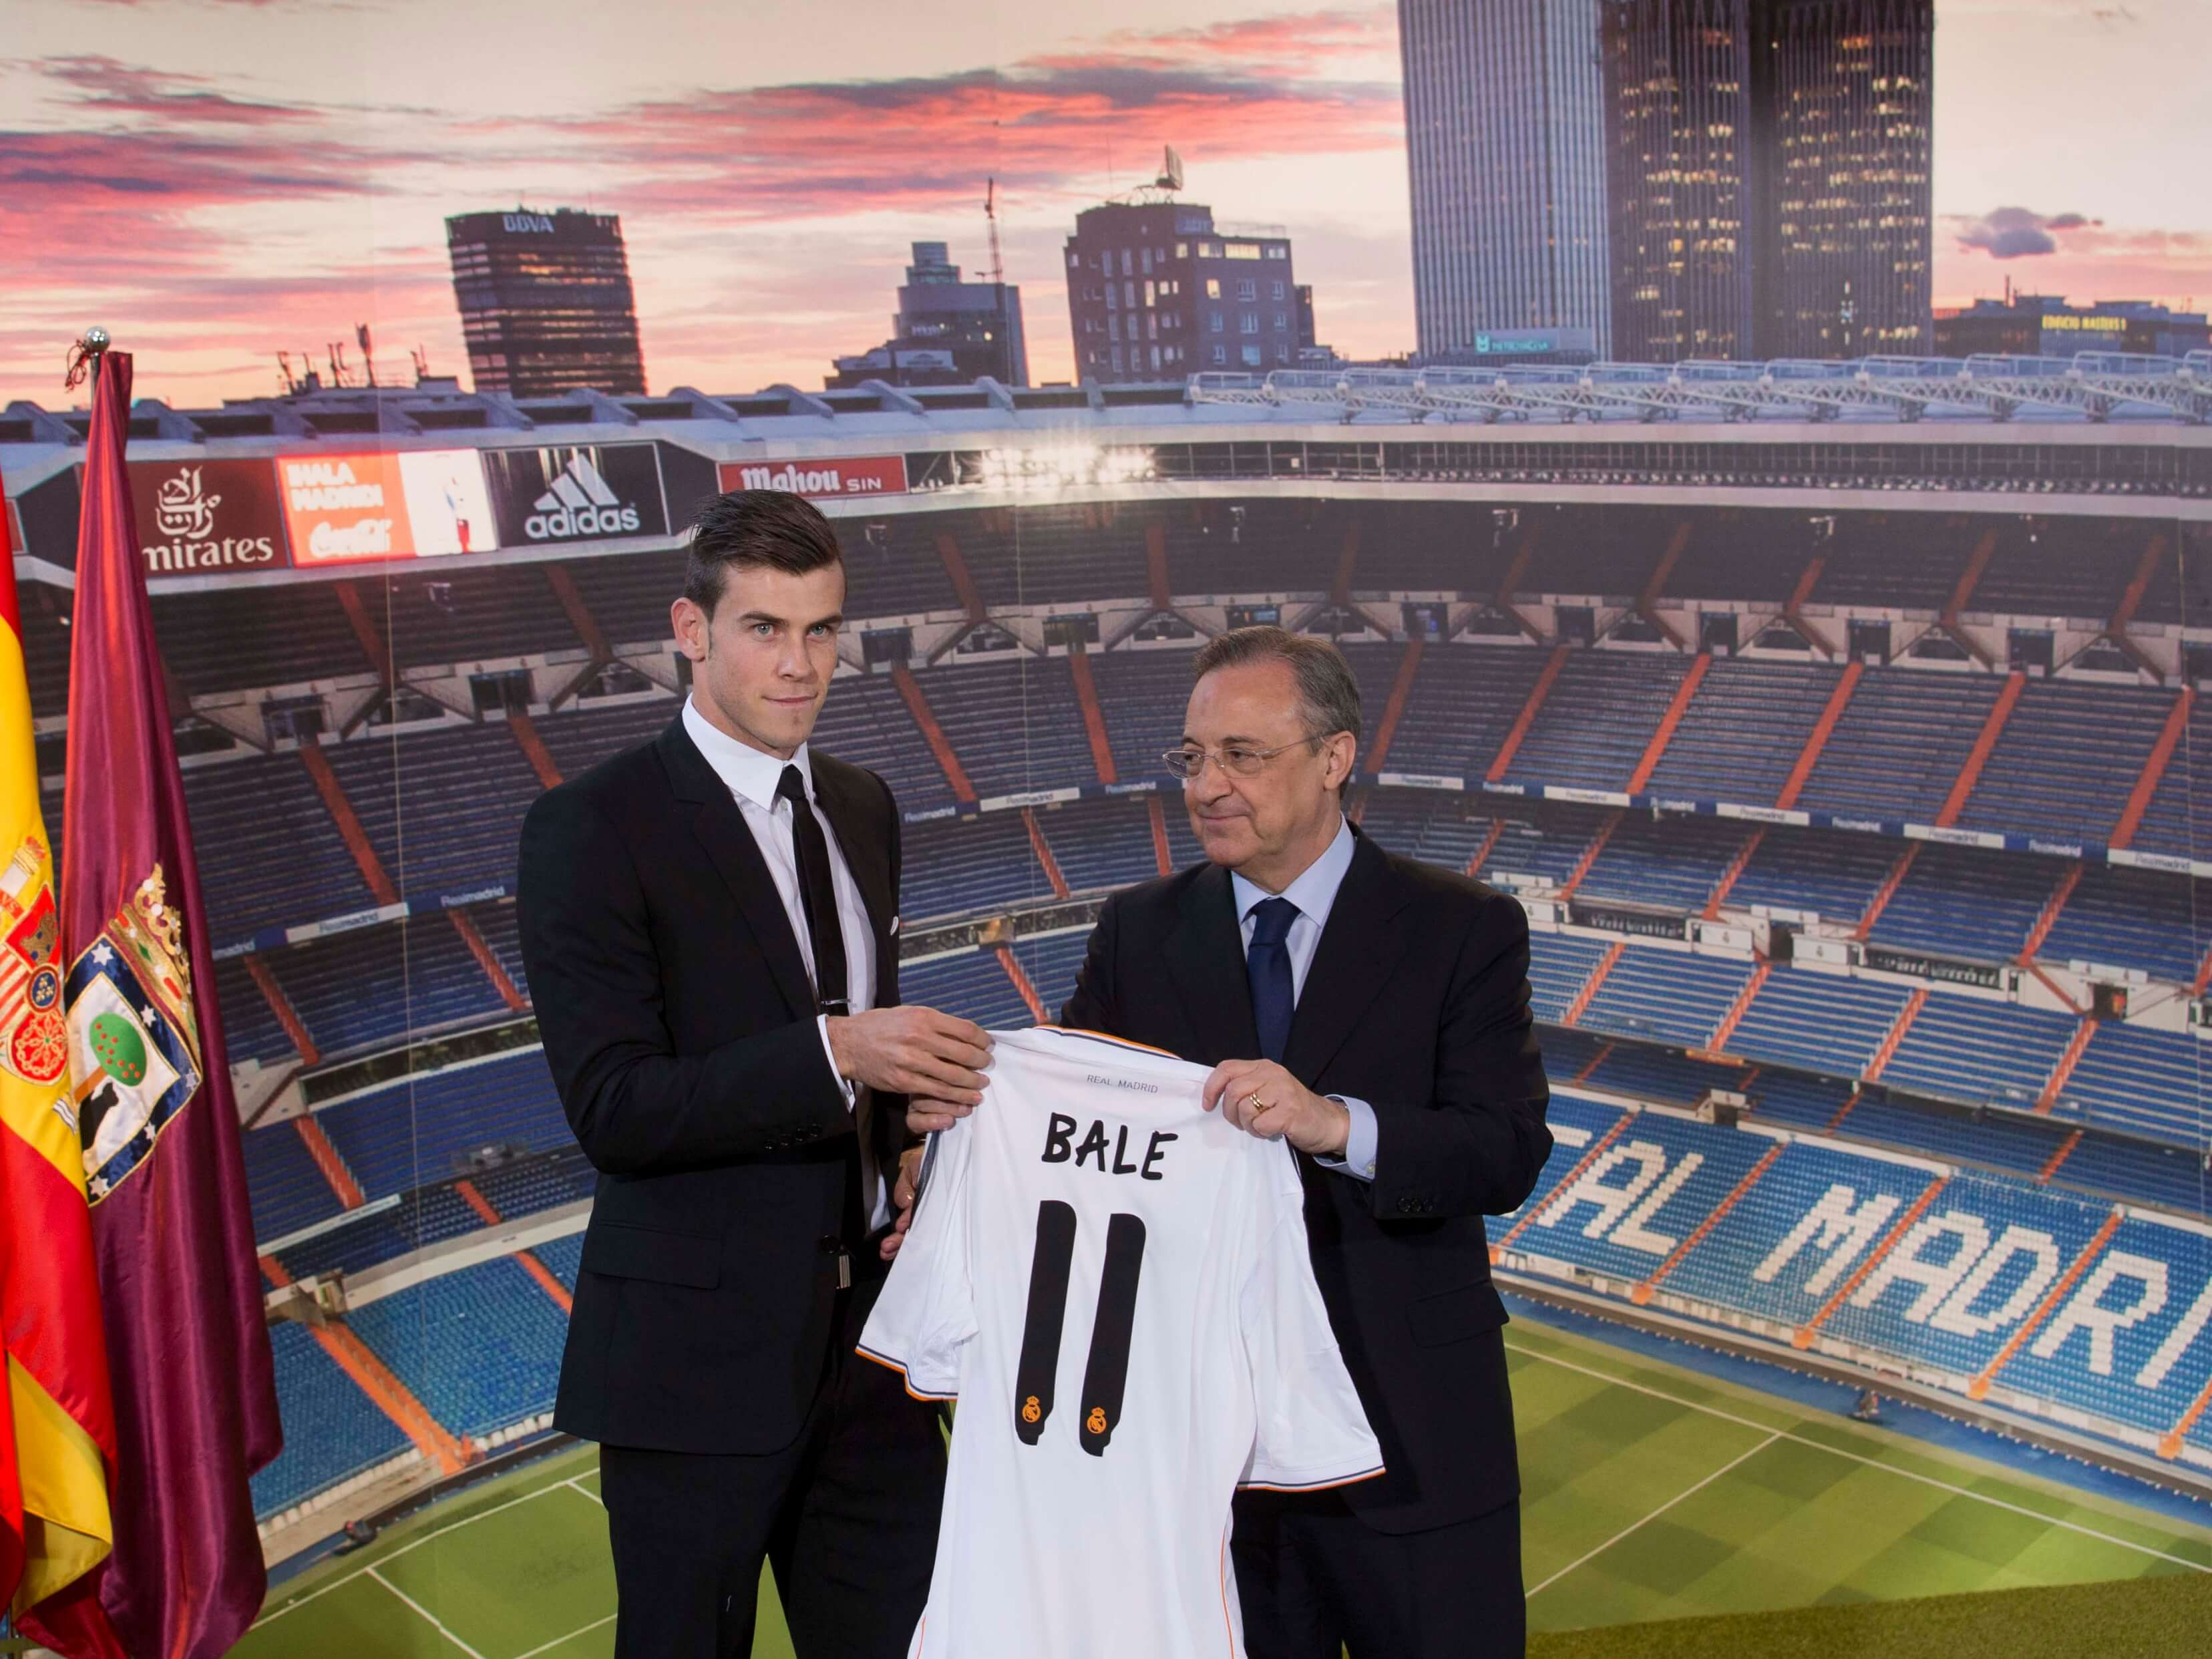 Gareth Bale signs for Real Madrid